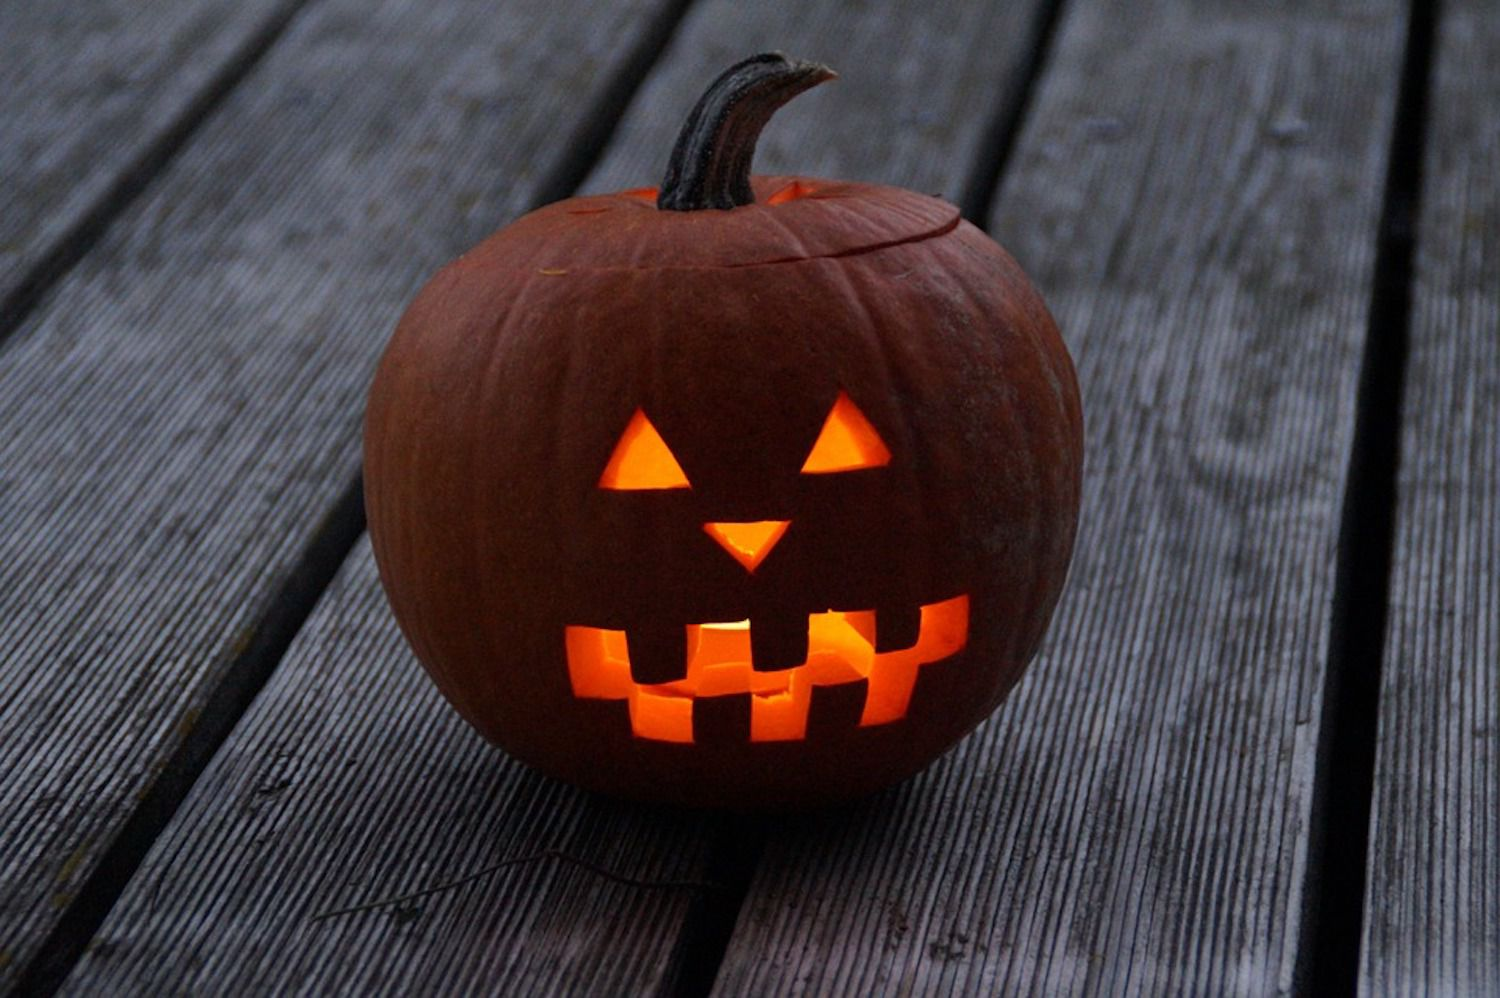 Home Accents 20-inch Light Up Jack-O-Lantern | The Home